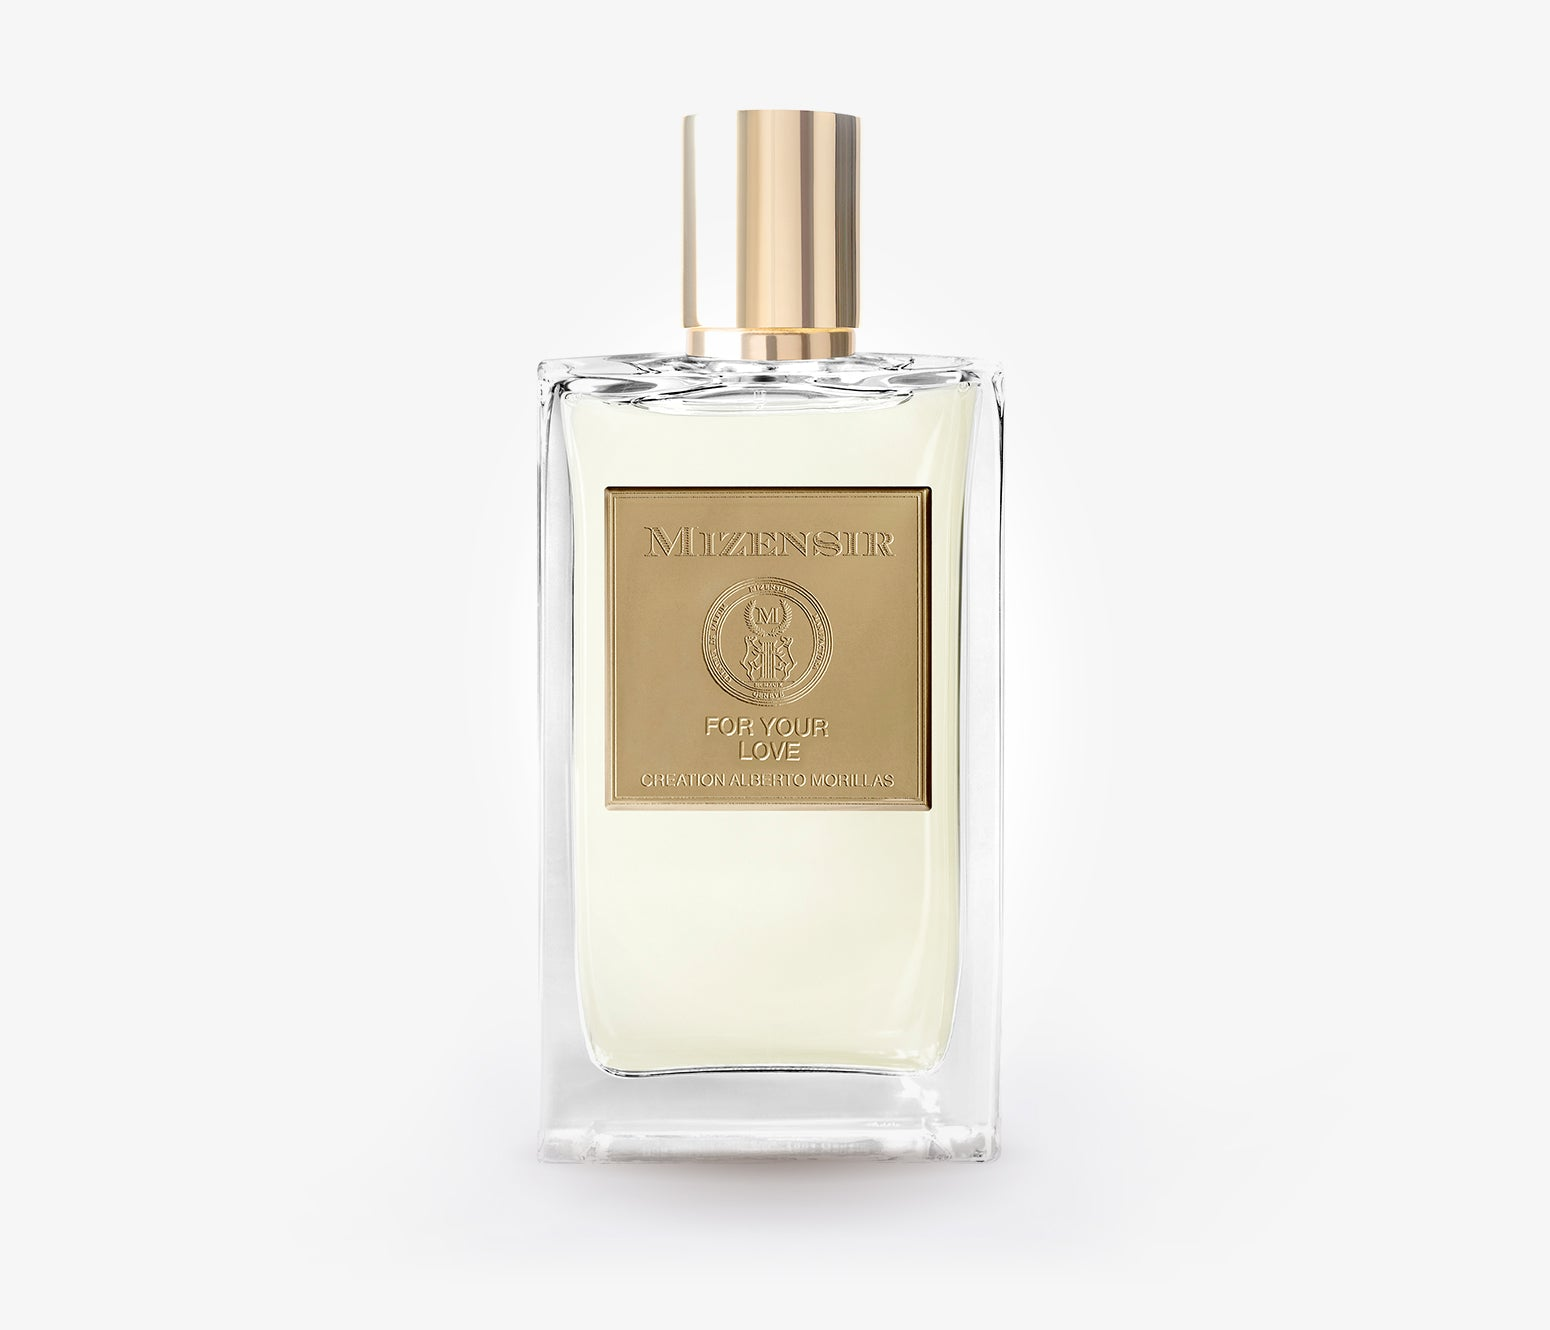 Mizensir - For Your Love - 100ml - QRC001 - product image - Fragrance - Les Senteurs